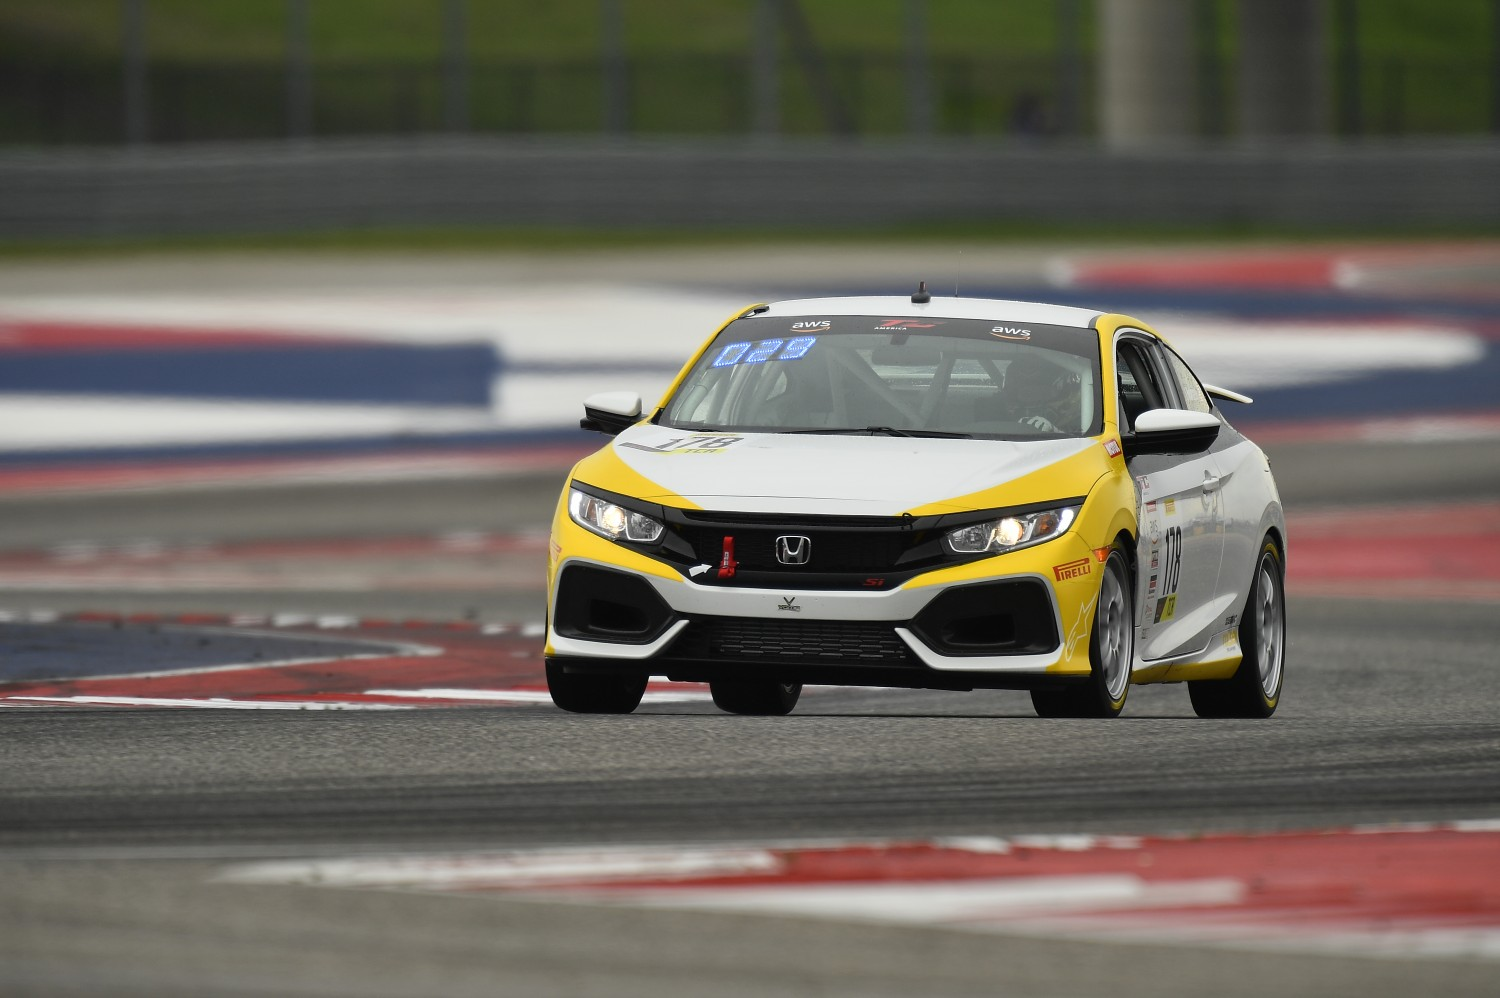 #178 TCA VGMC Racing, Jonathan Newcombe, Honda Civic Si, 2020 SRO Motorsports Group - Circuit of the Americas, Austin TX  | SRO Motorsports Group